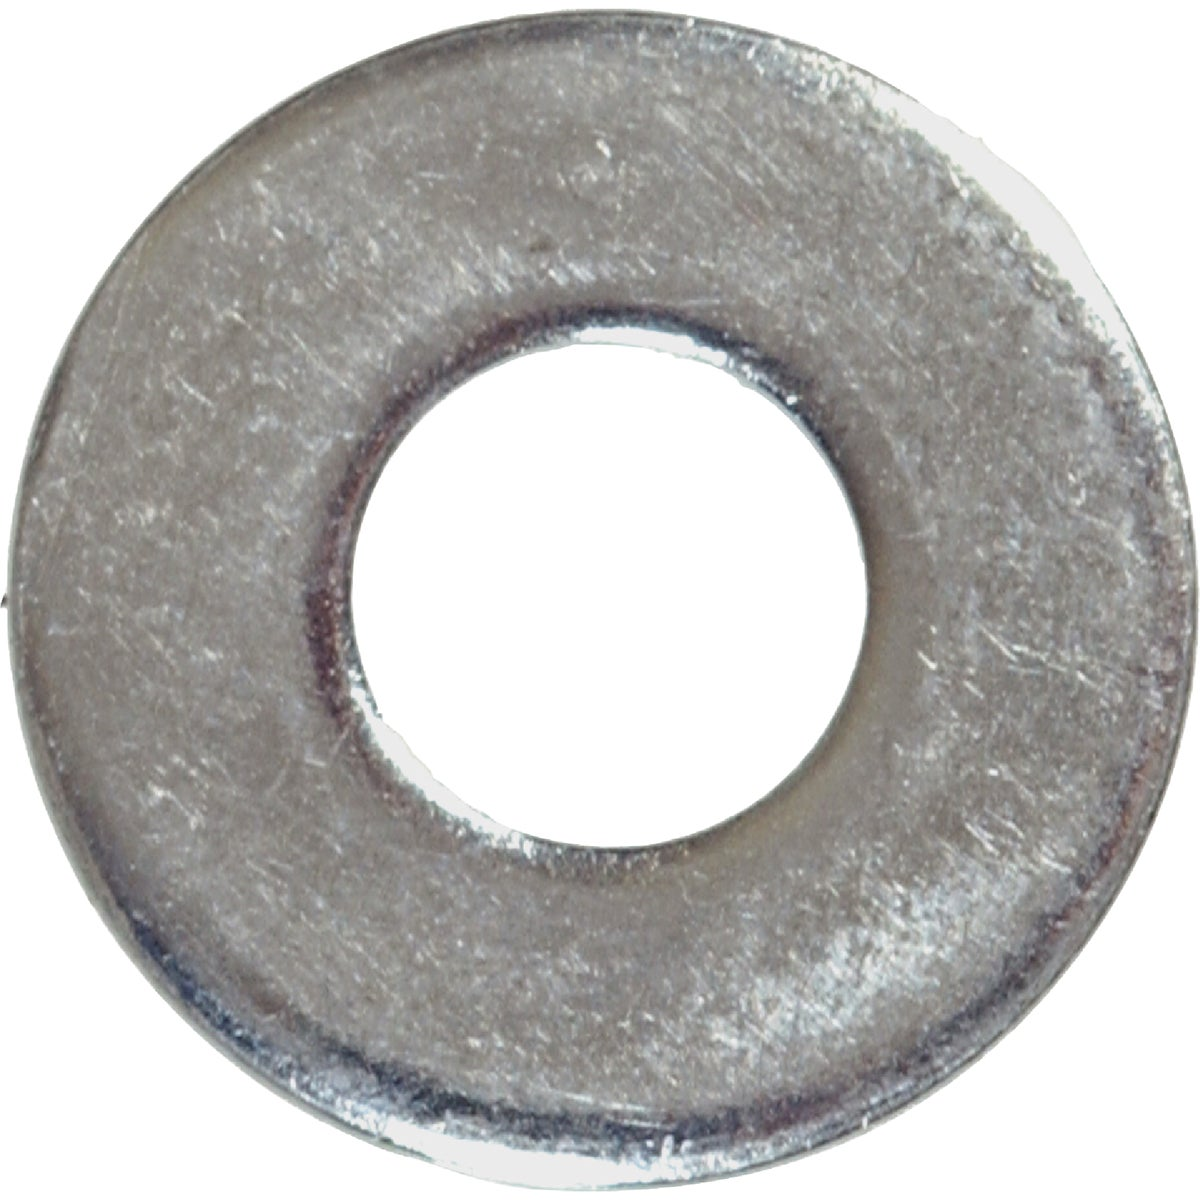 10PC 7/8 USS FLAT WASHER - 270076 by Hillman Fastener